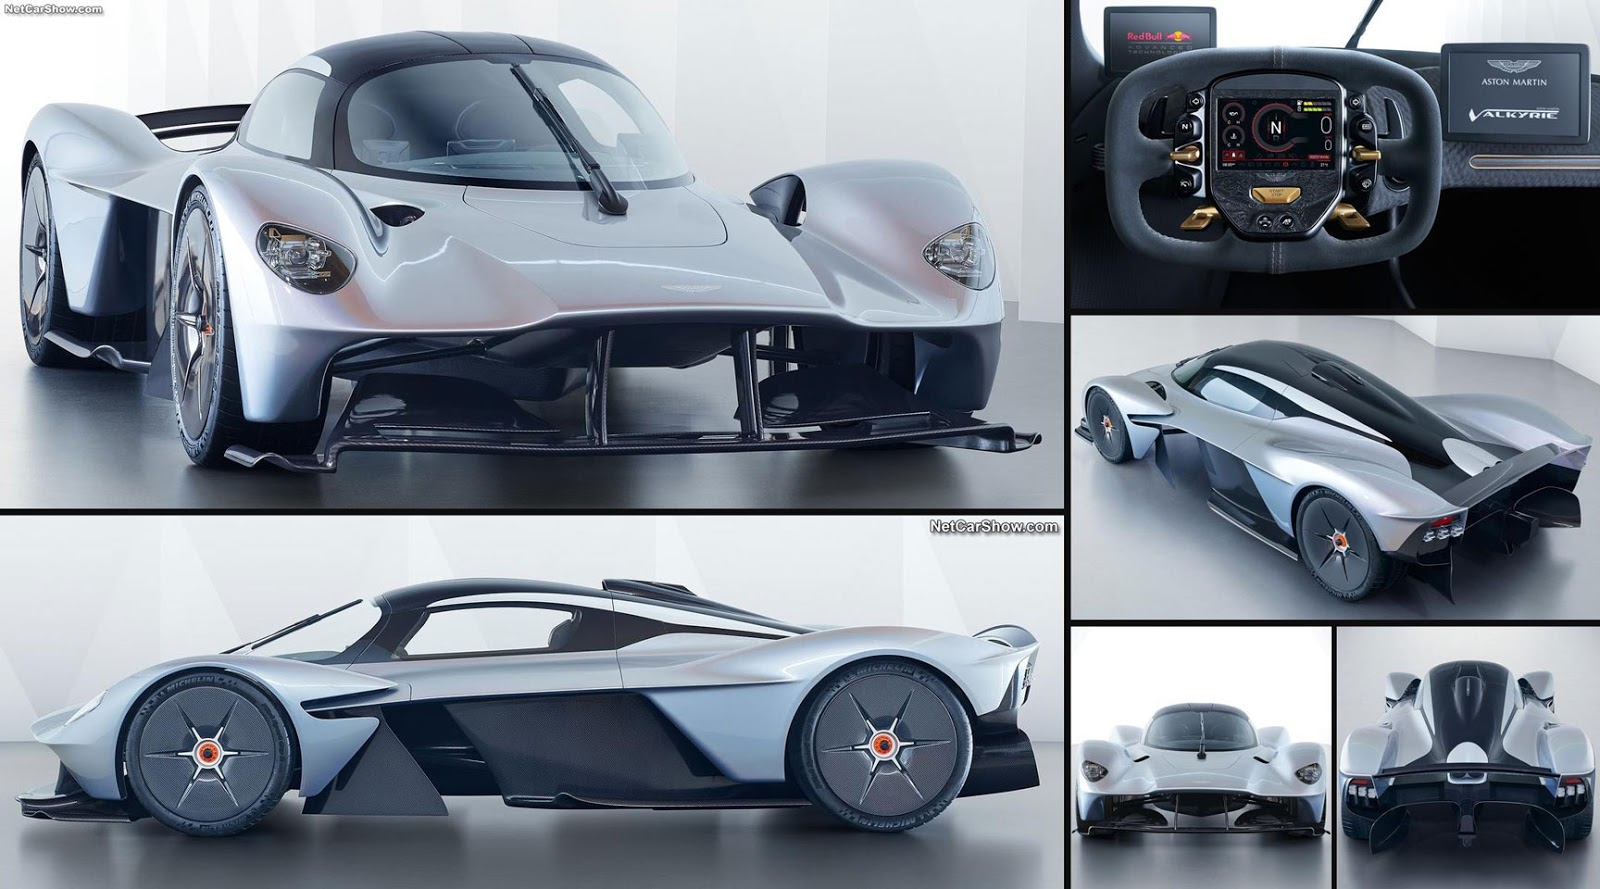 aston martin valkyrie hybrid – expected price in india